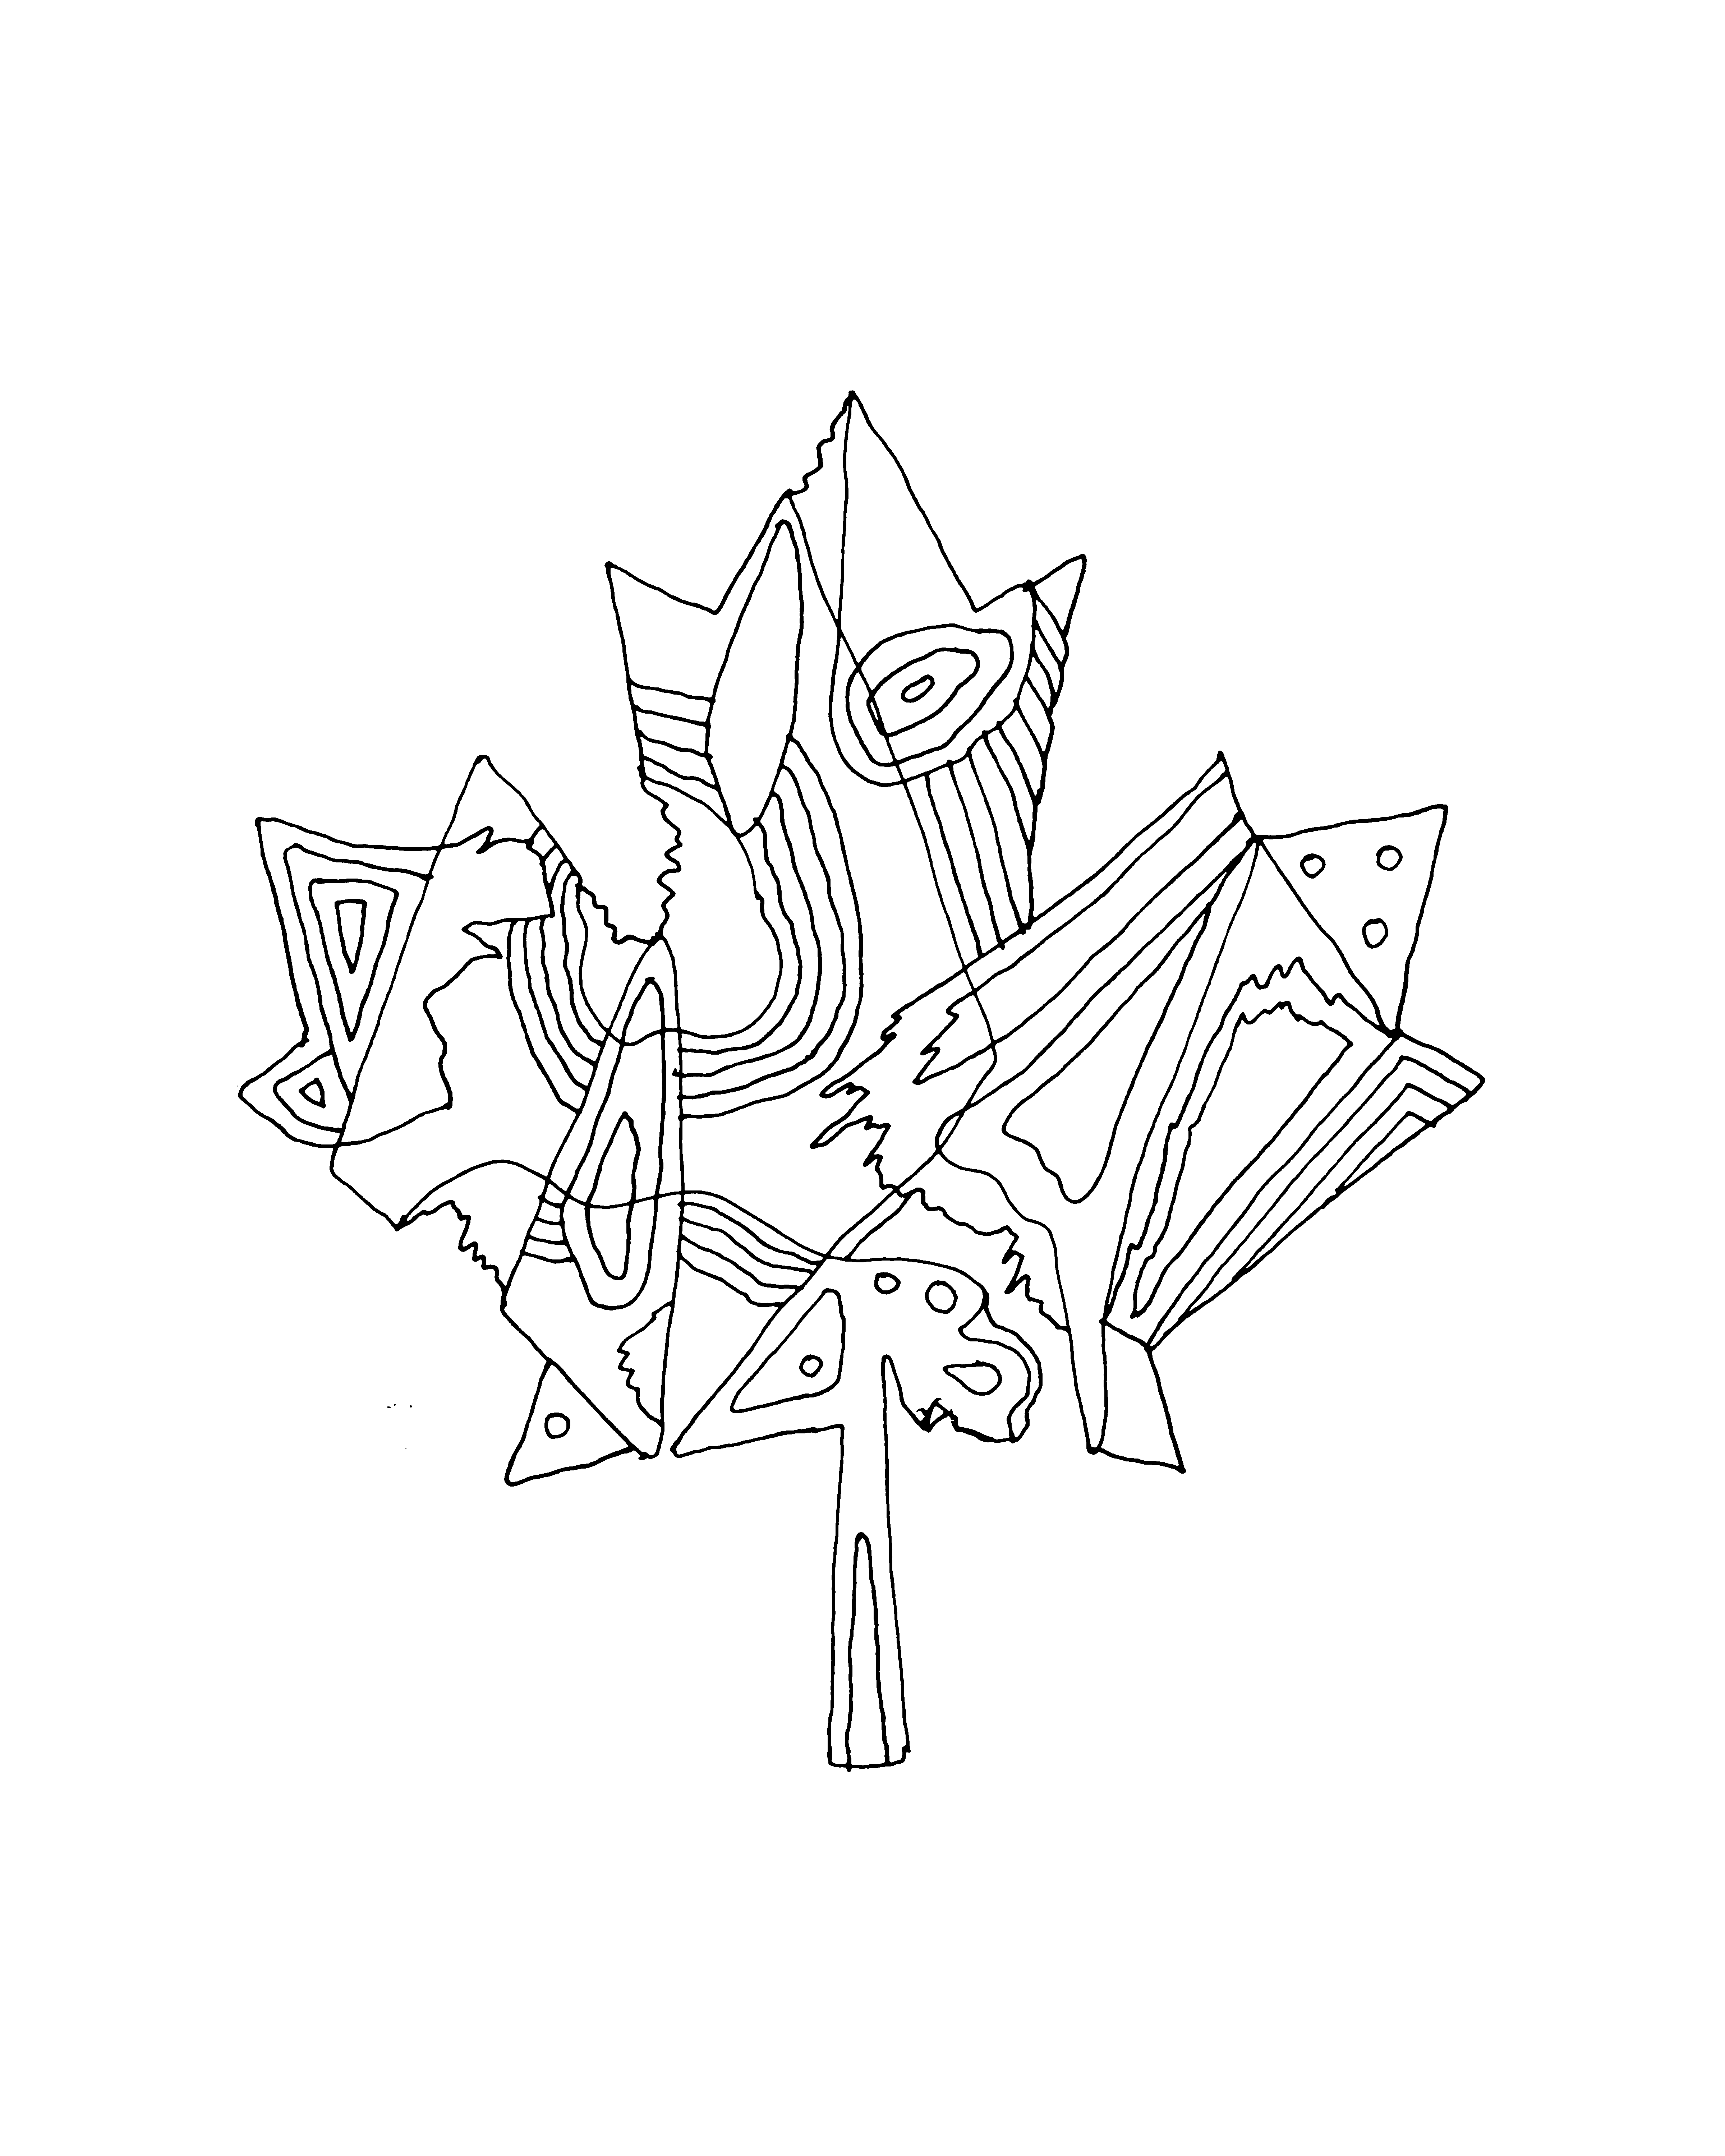 abstract line drawing page 5769 the 10000 page colouring book canadian maple leaf inner maple leaf free colouring page for adults and children - Download Colouring Book